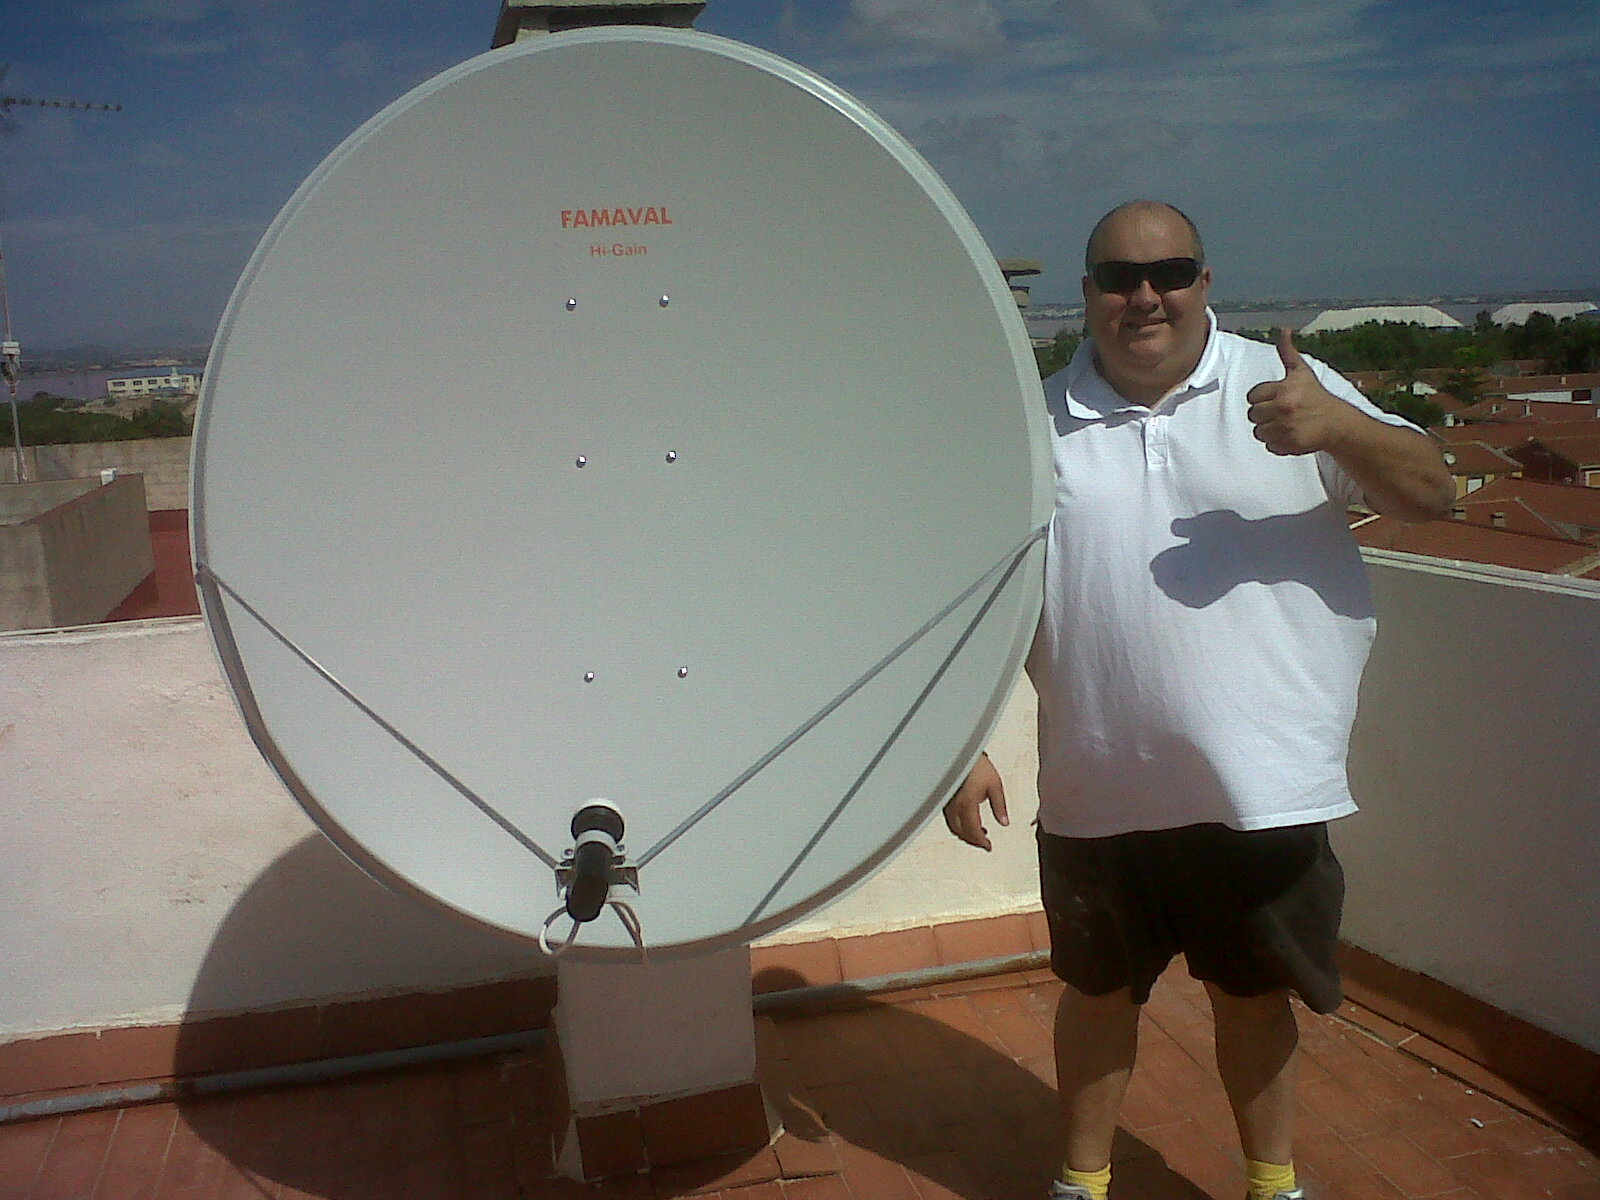 quesada satellite tv 1.4 famaval dish special offer HD Box Torrevieja Spain offer MAY